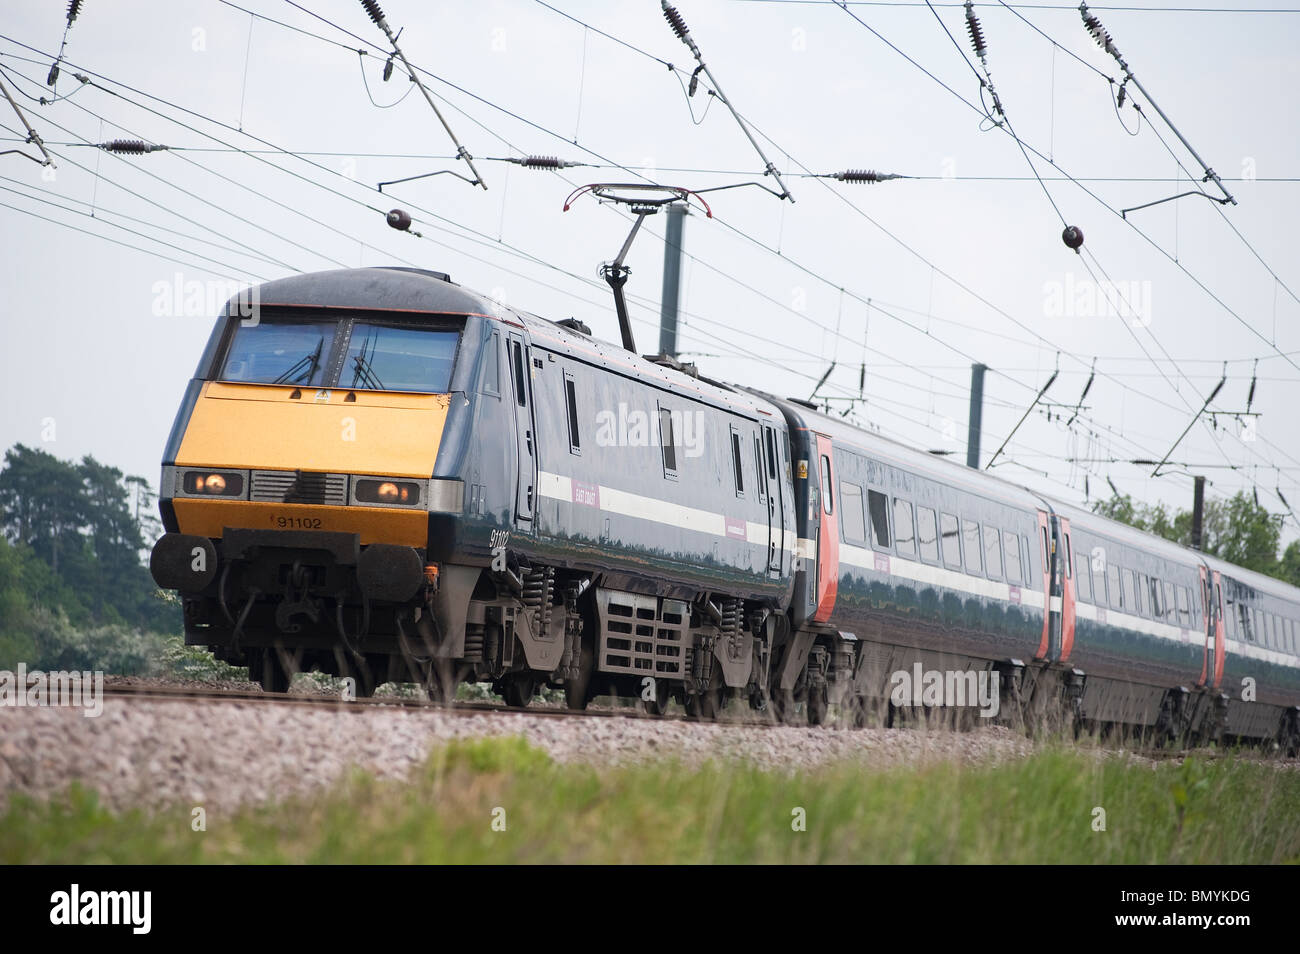 East Coast high speed passenger train travelling at speed along the east coast main line in England. - Stock Image